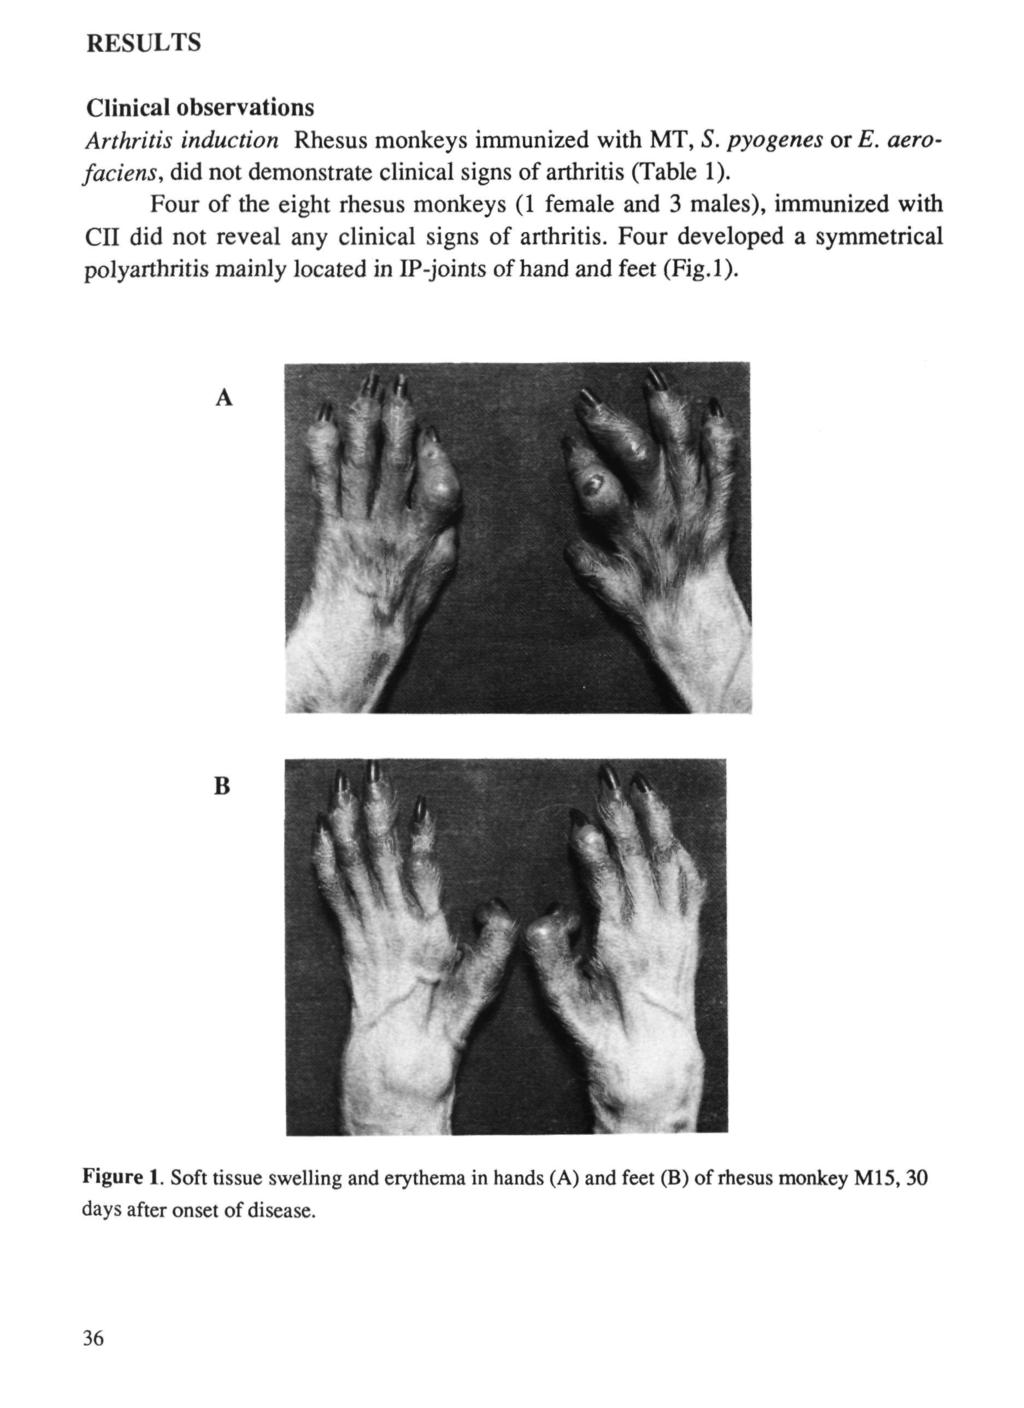 RESULTS Clinical observations Arthritis induction Rhesus monkeys immunized with MT, S. pyogenes or E. aerofaciens, did not demonstrate clinical signs of arthritis (Table ).